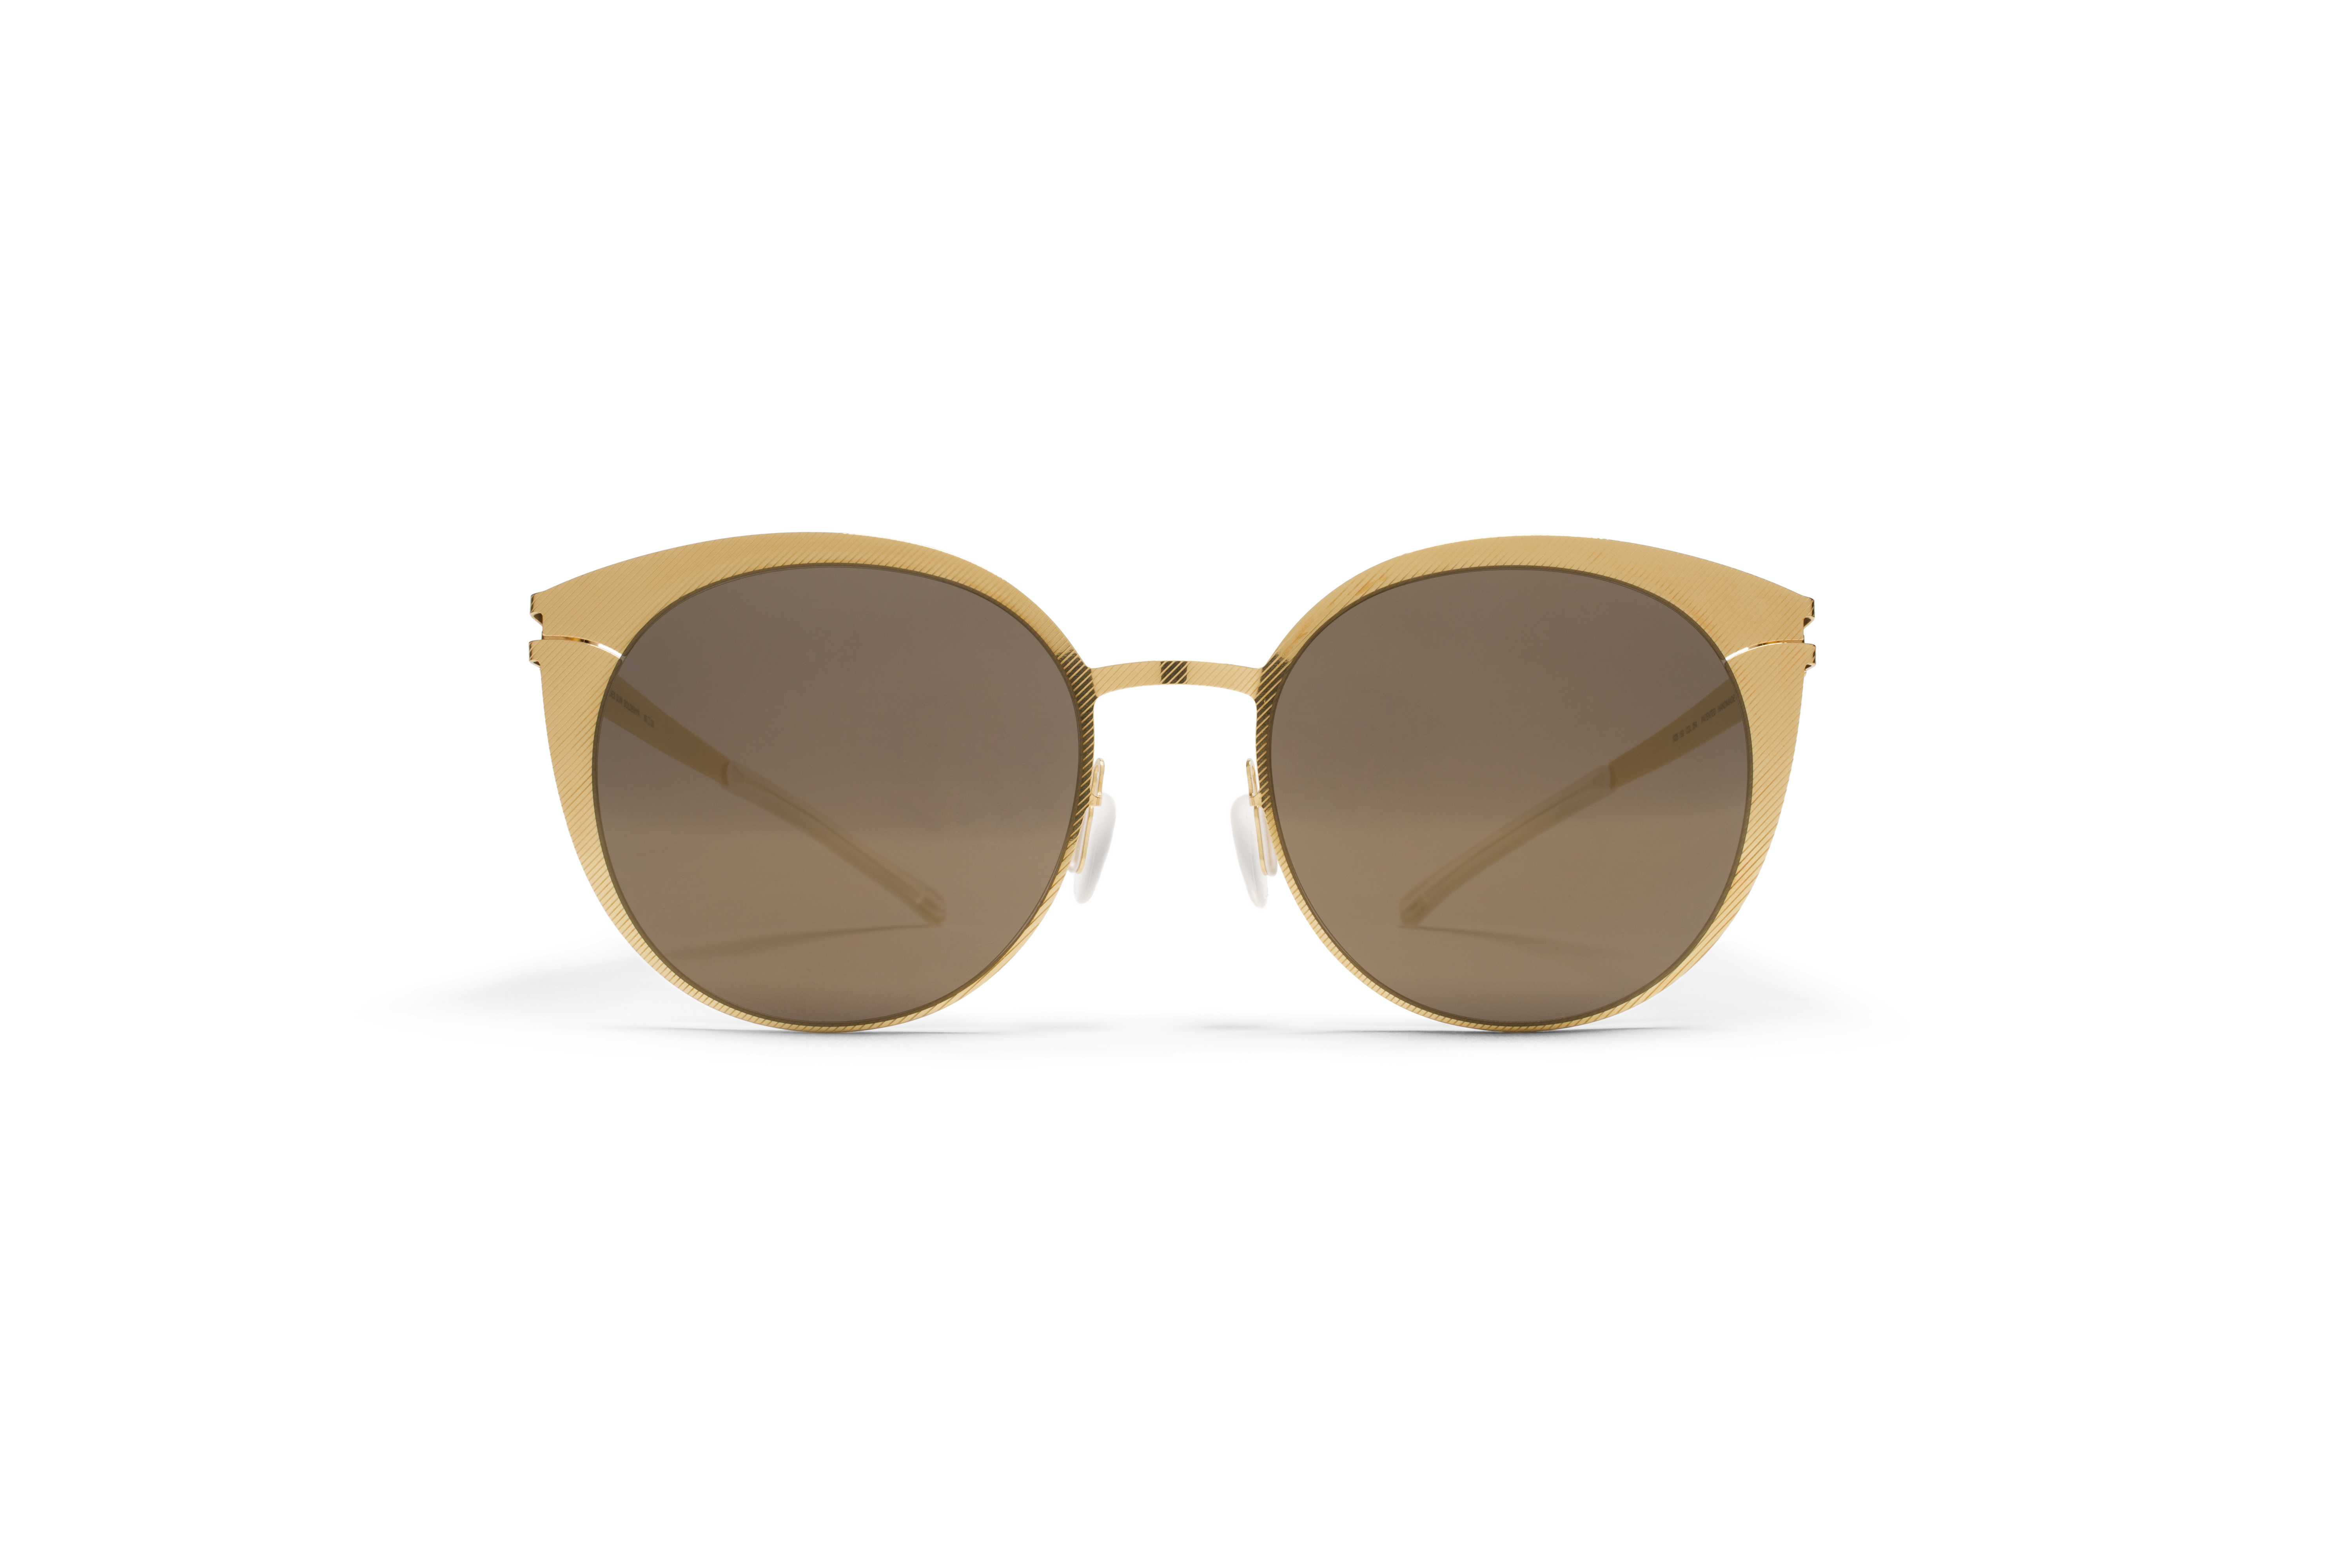 Mykita Round Sunglasses | Mykita Houston | Mykita Glasses